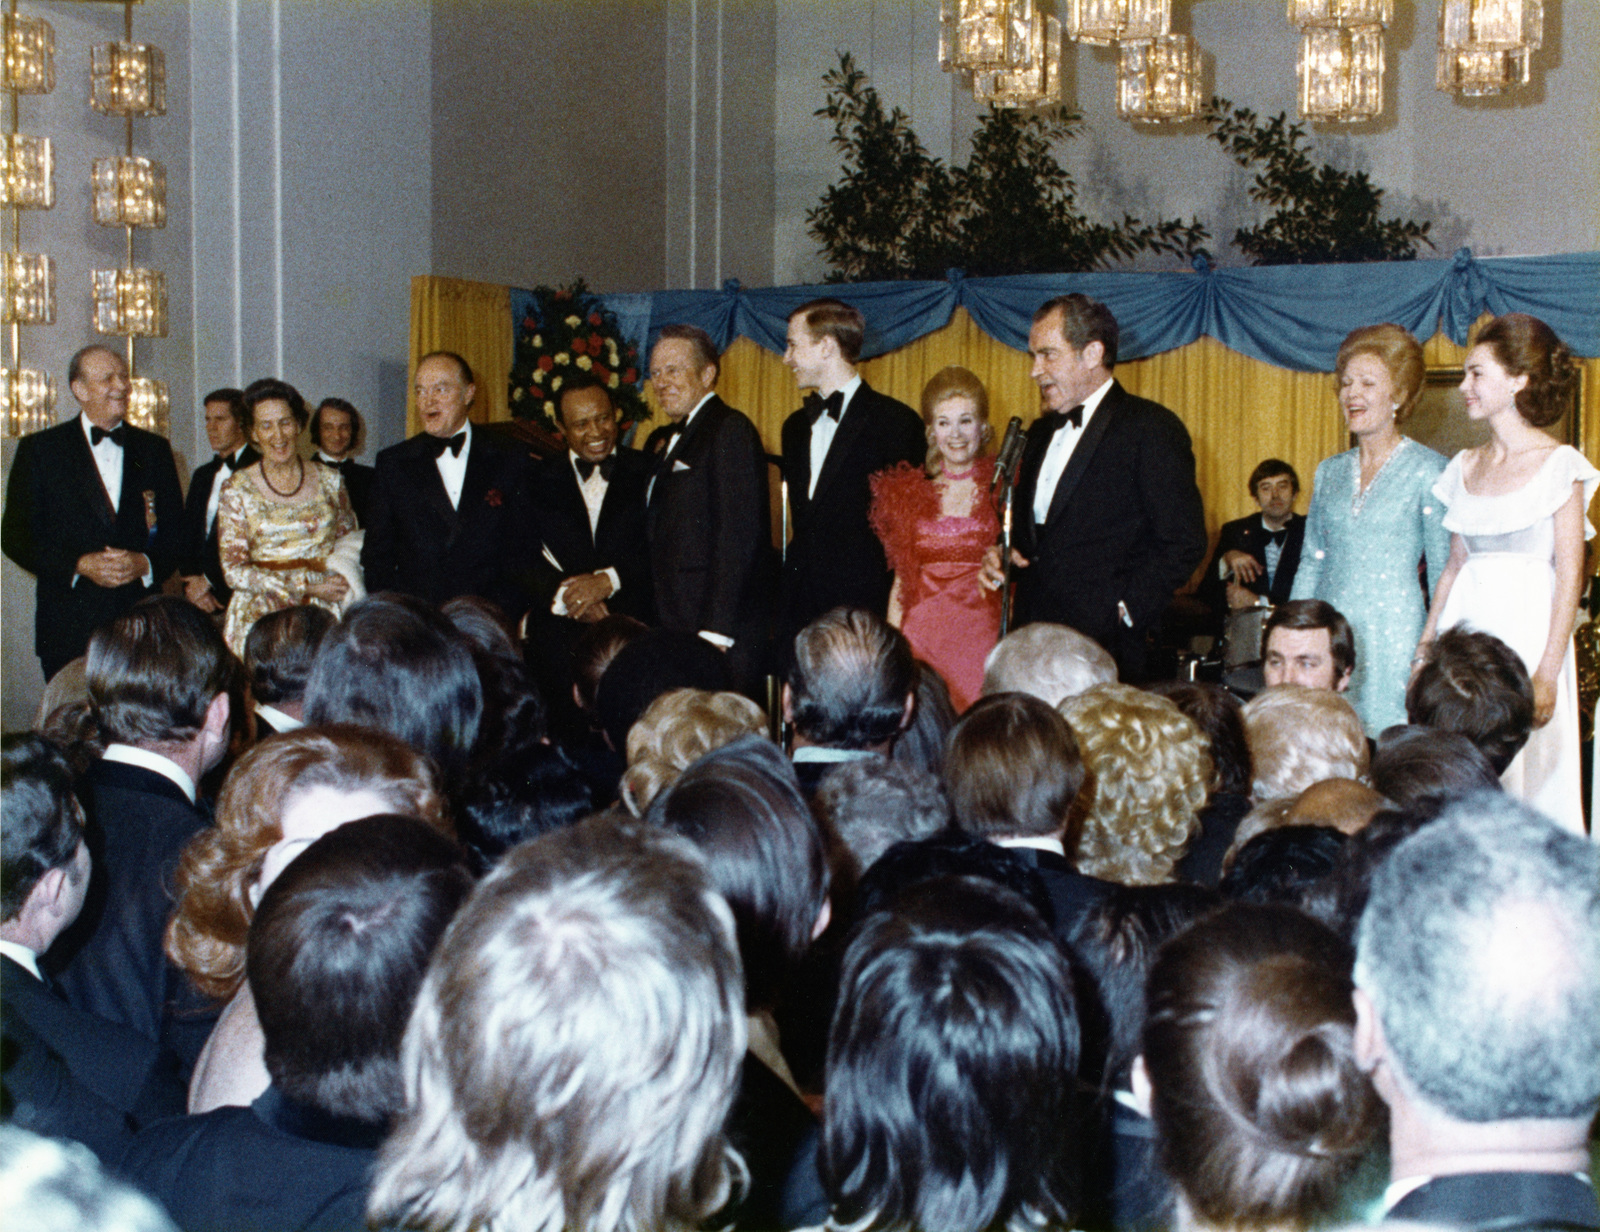 President Richard Nixon, with His Family and Celebrity Supporters, Addressing the Crowd Gathered in the Kennedy Center Grand Foyer to Celebrate the Inauguration